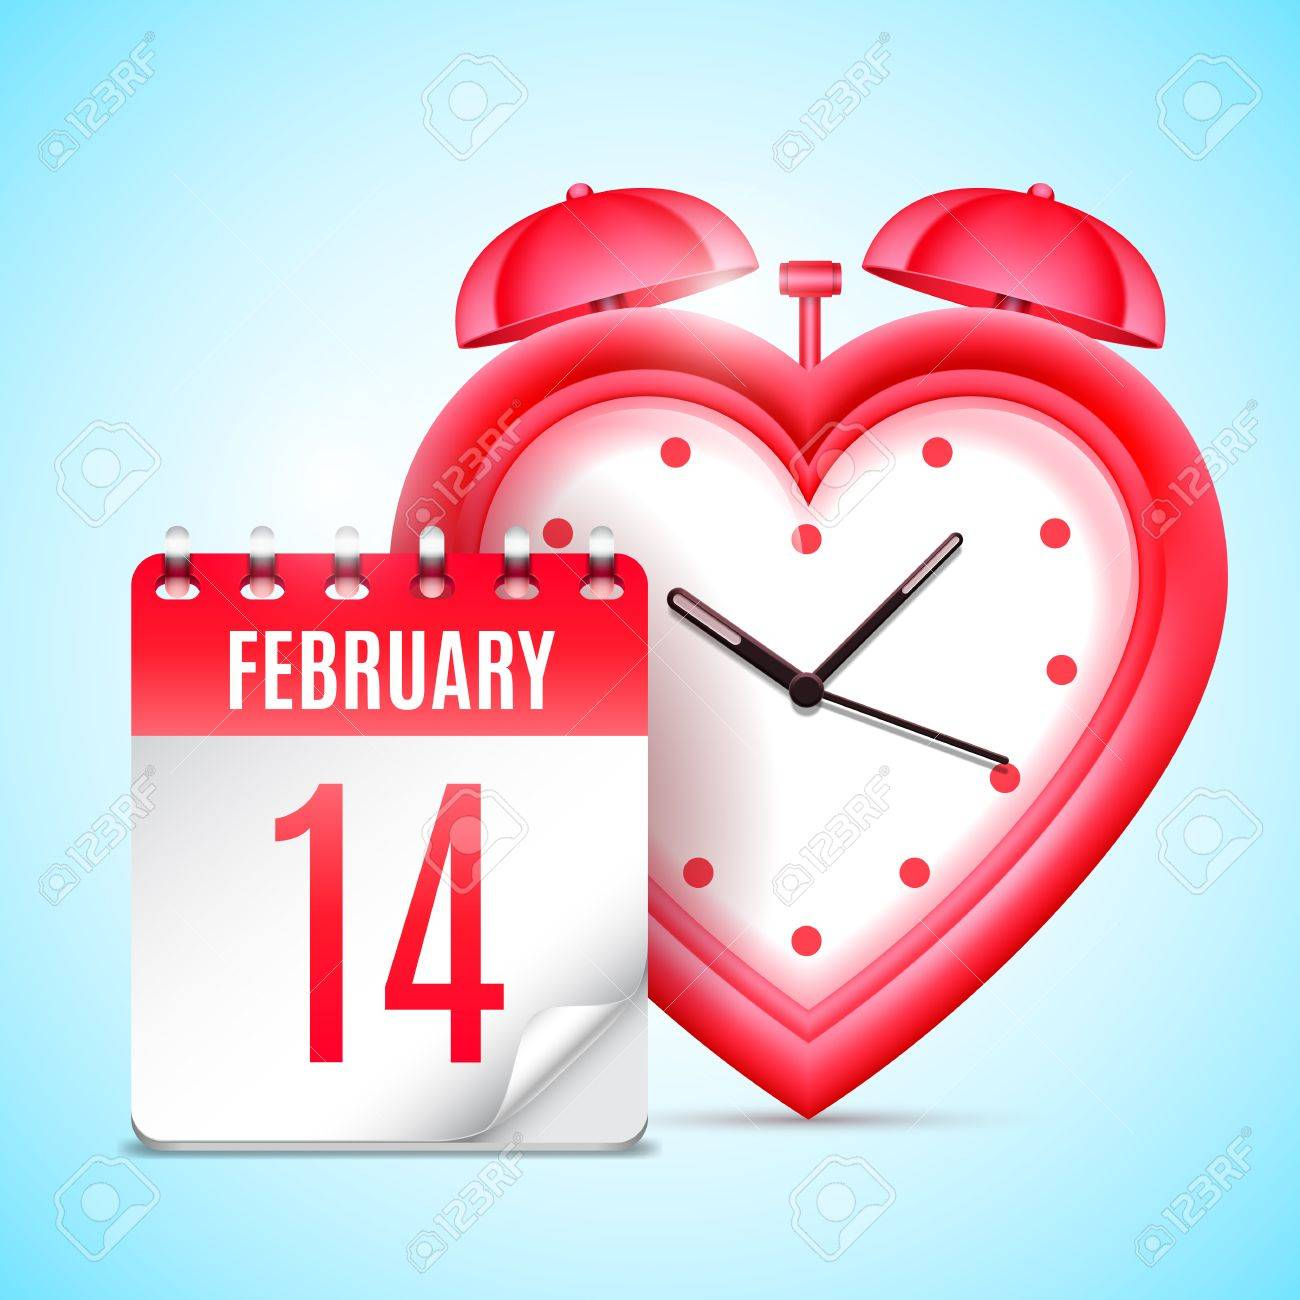 heart shaped clock and